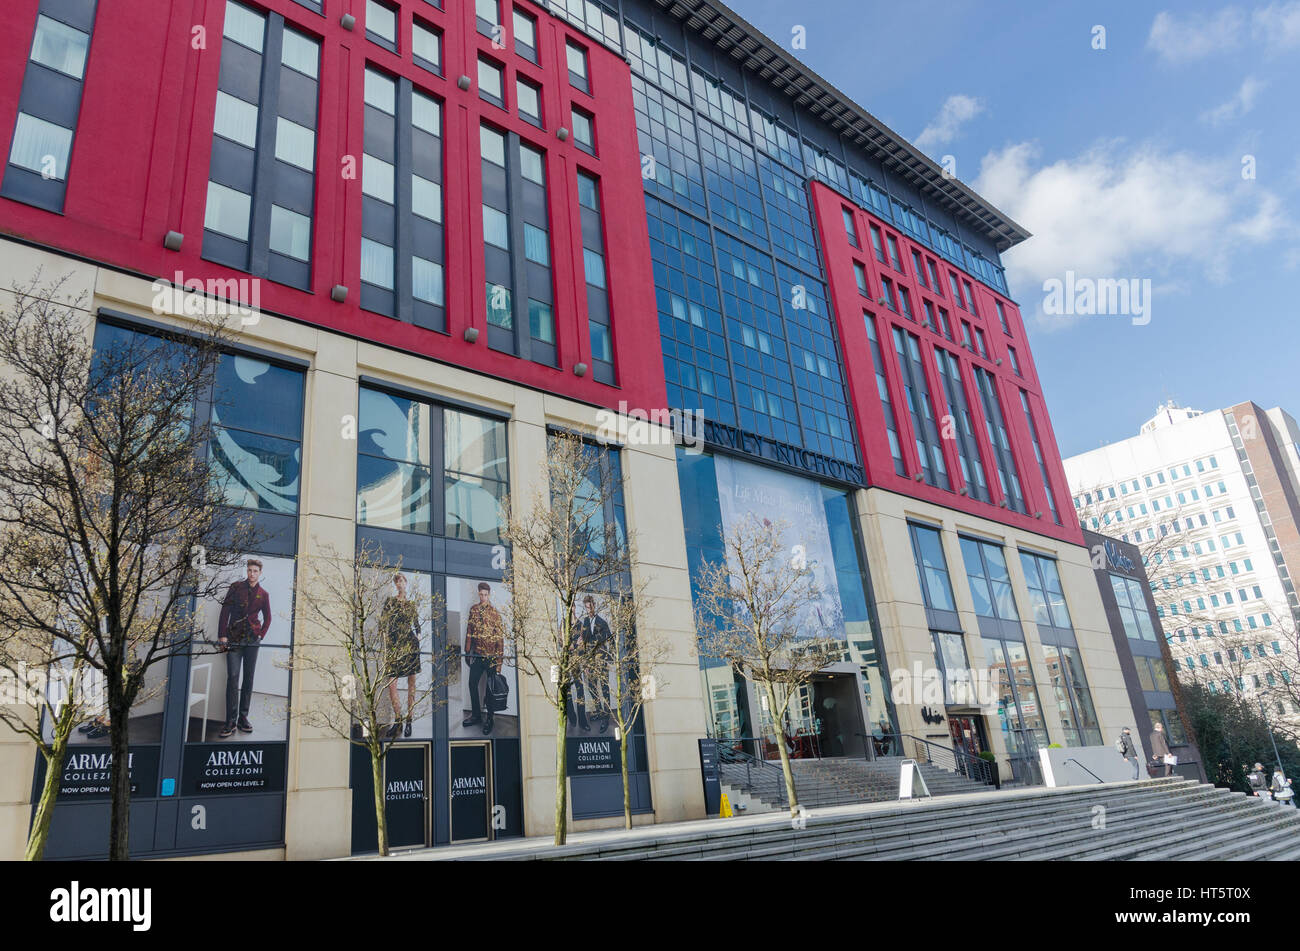 Royal Mail Sorting Office High Resolution Stock Photography And Images Alamy